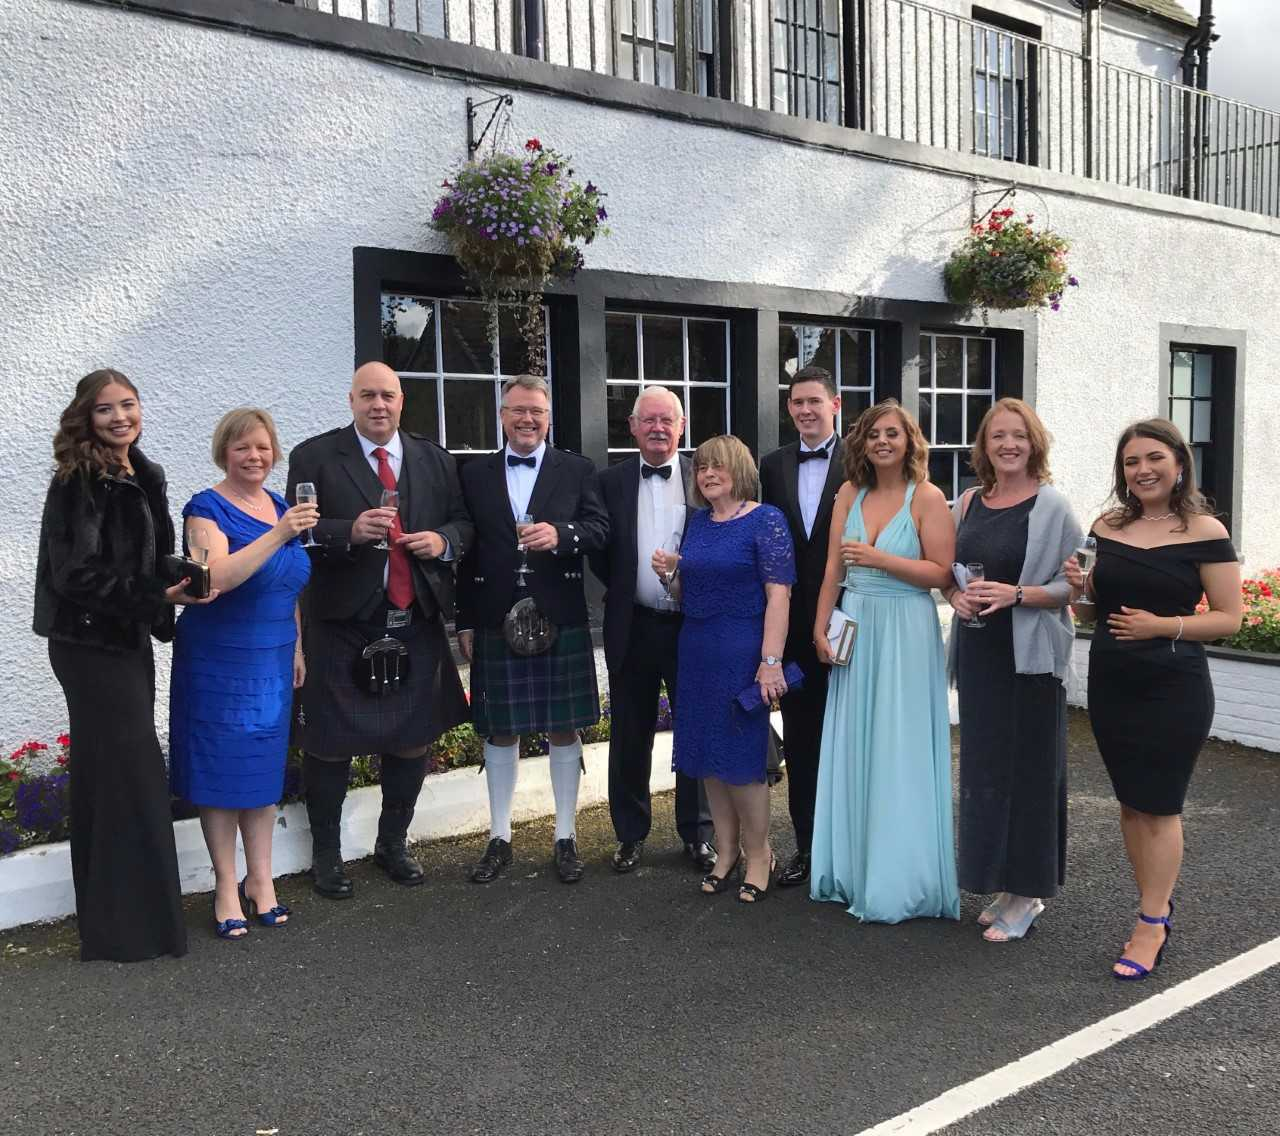 Staff at the Uplawmoor Hotel celebrate their award